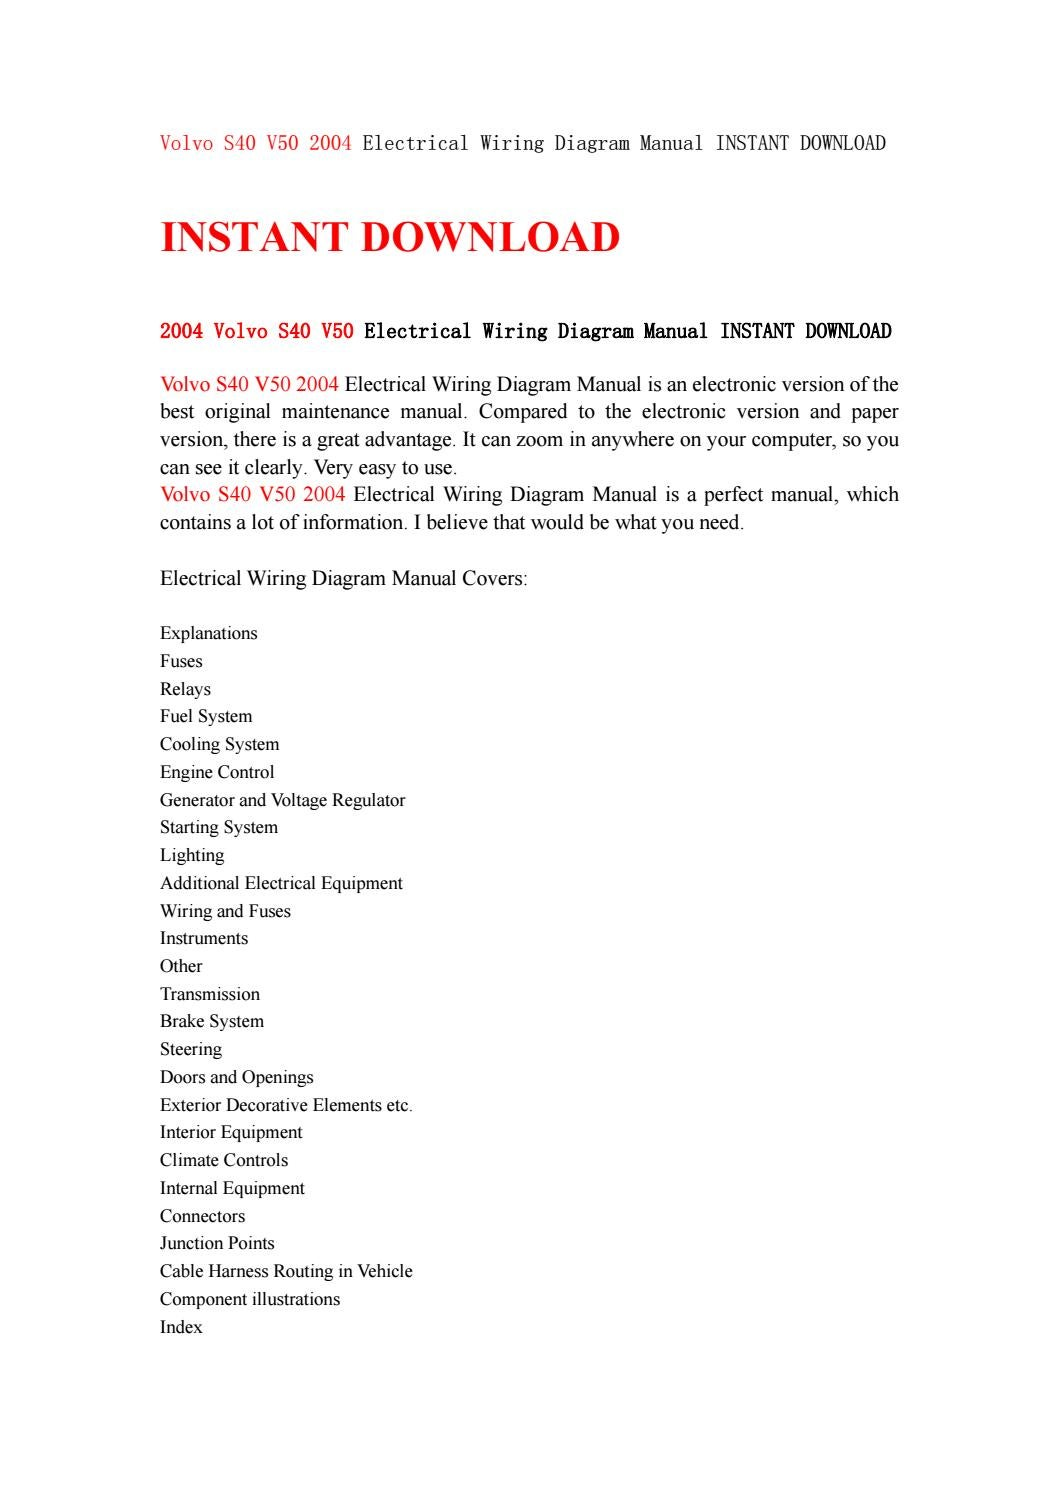 Volvo s40 v50 2004 electrical wiring diagram manual instant download by  kjjsemfmse - issuu